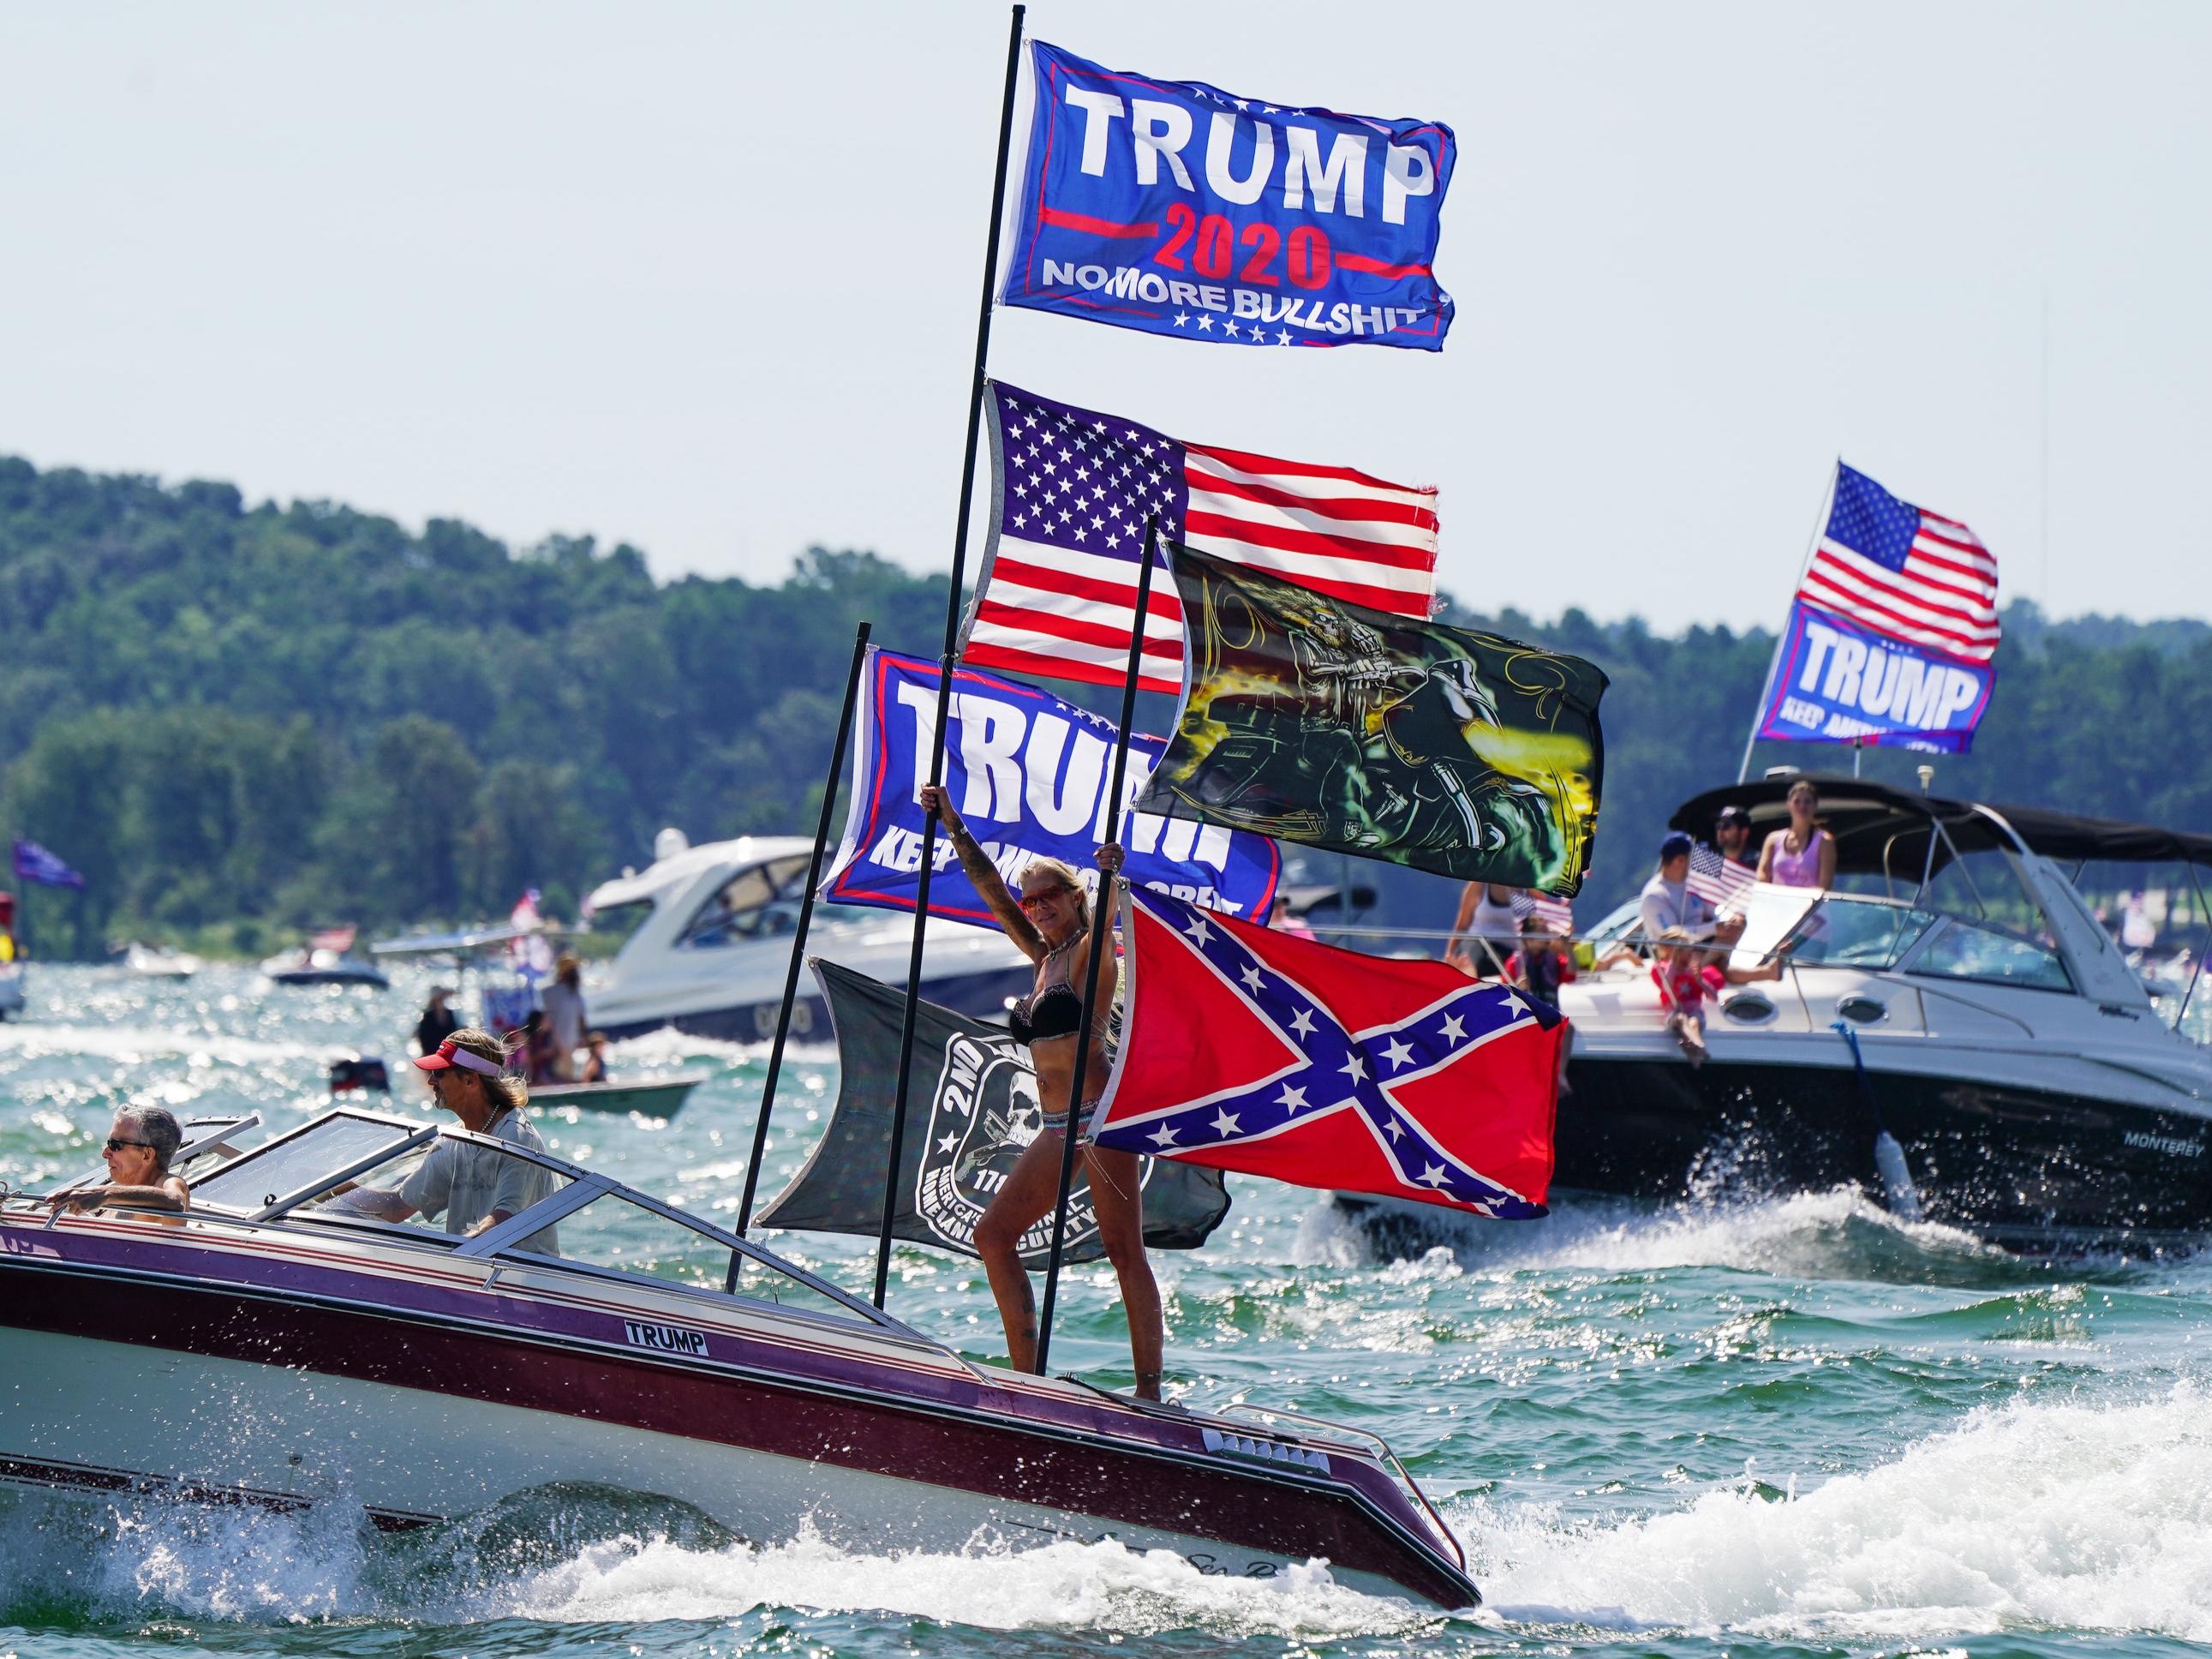 Boats adorned with US and Trump campaign flags are seen on Lake Lanier during a 'Great American Boat Parade' in Georgia